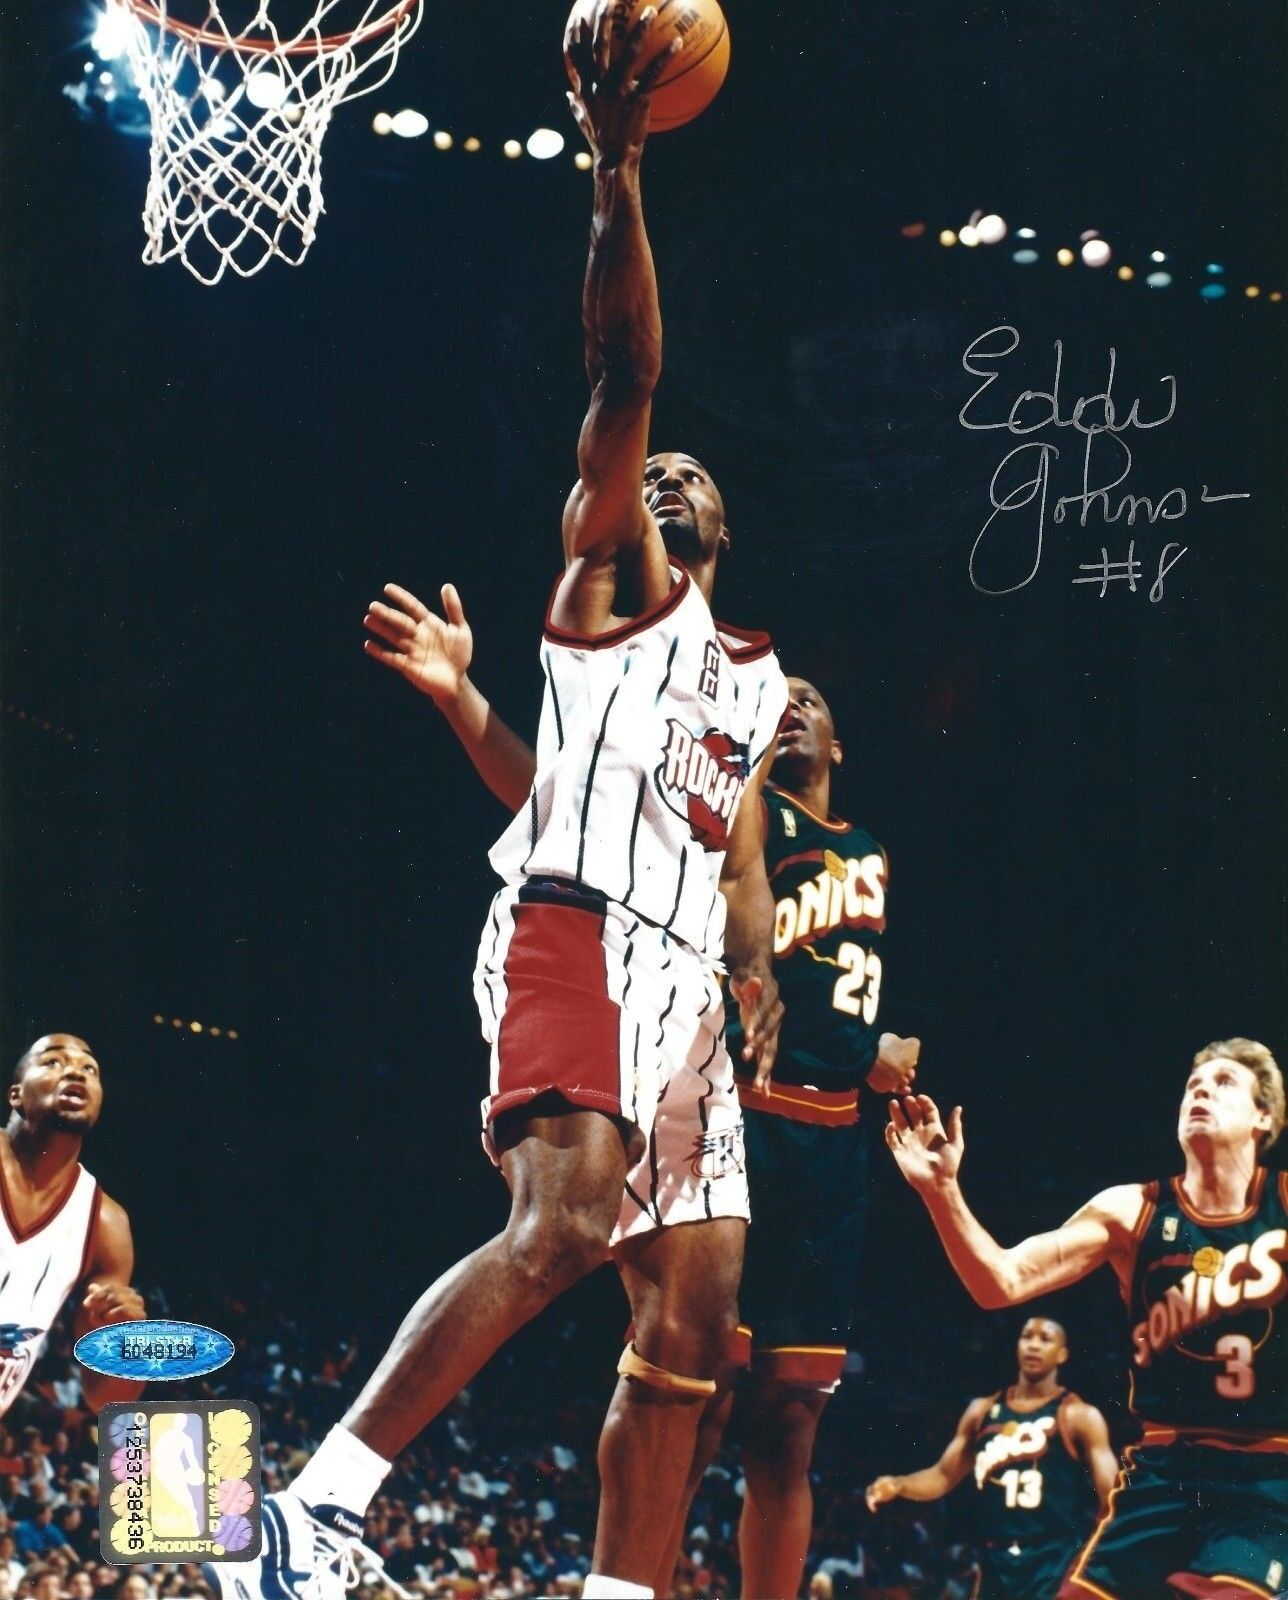 Eddie Johnson Signed Houston Rockets Basketball 8x10 Photo Tri-Star 6048194